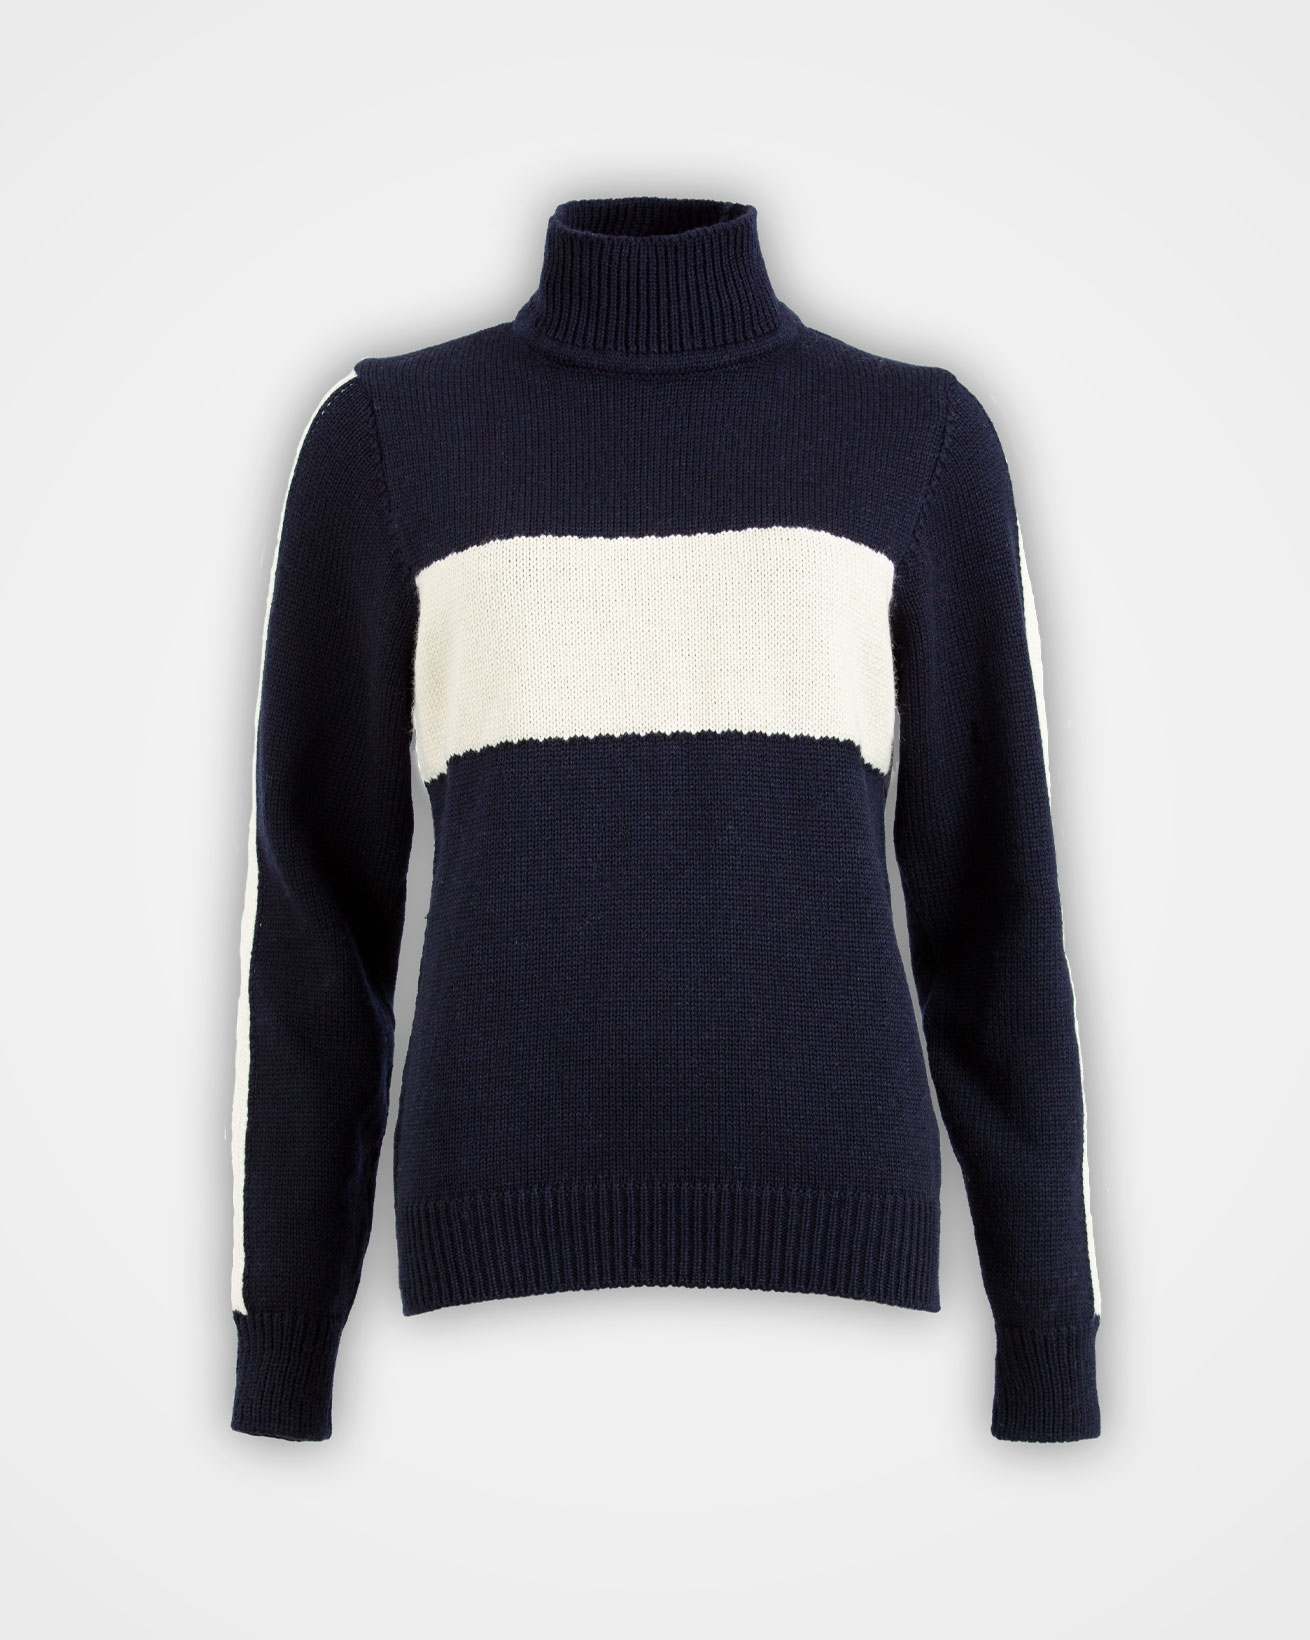 7606_alpine-statement-stripe-funnel-neck_dark-navy_front_shadow.jpg